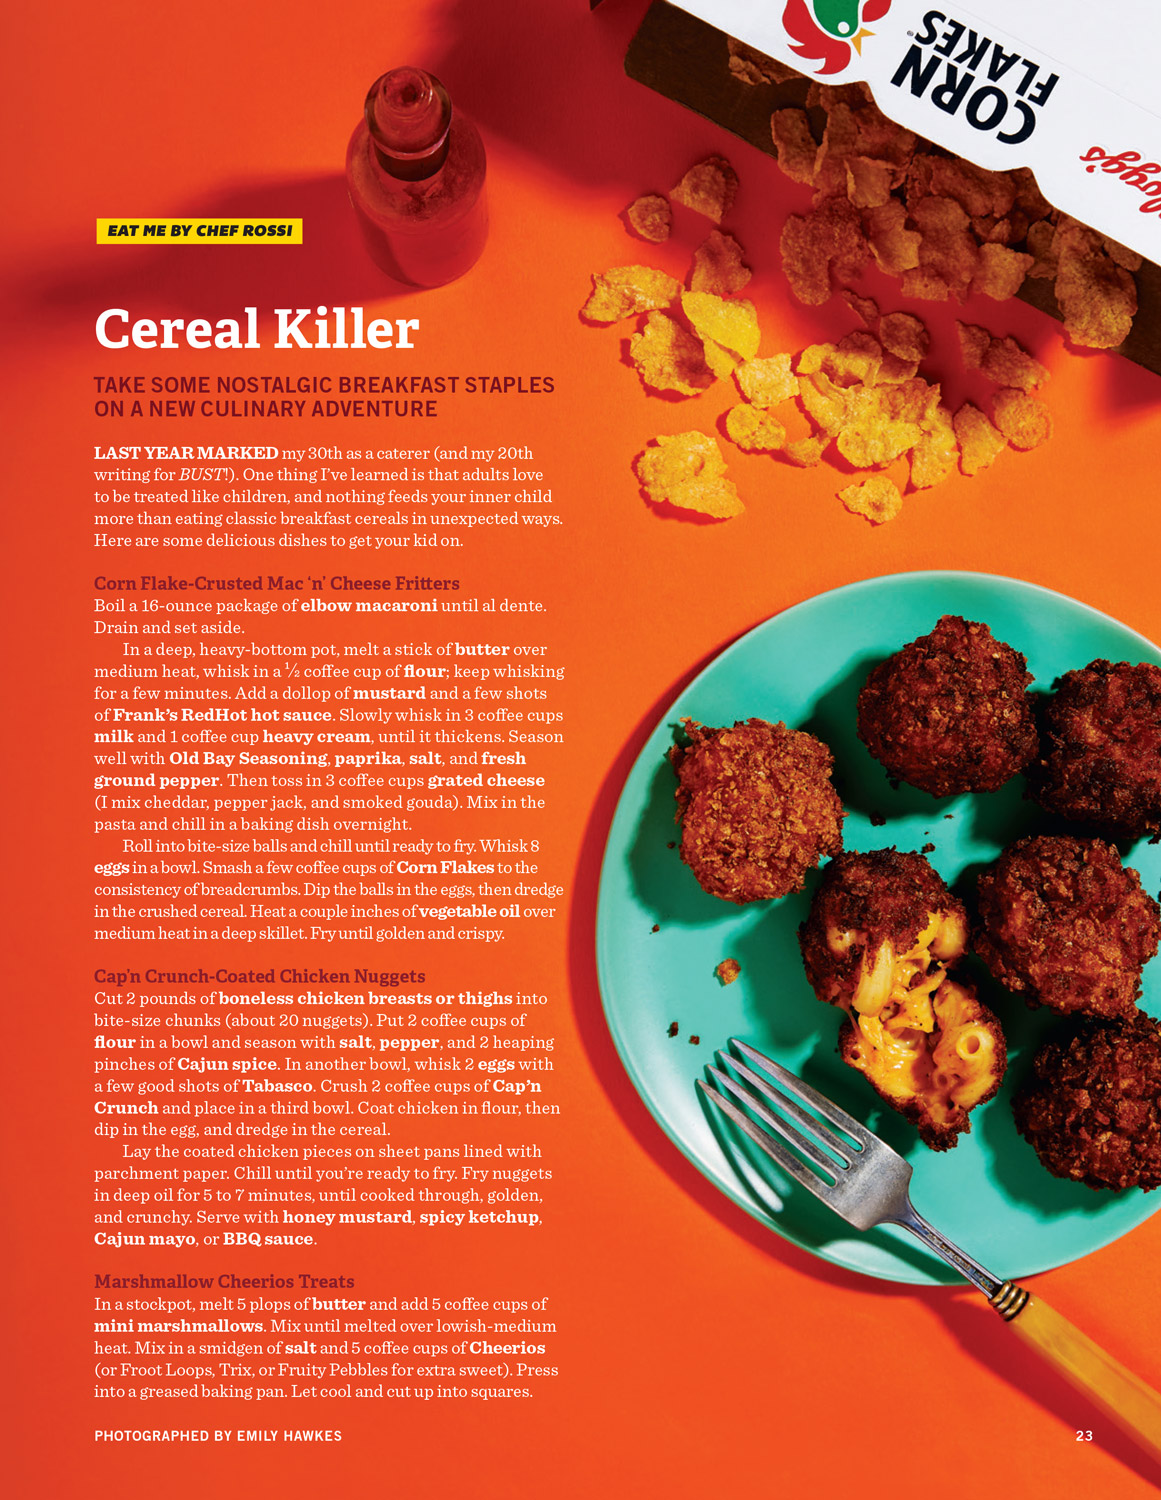 BUST Magazine Cereal Recipe Feature